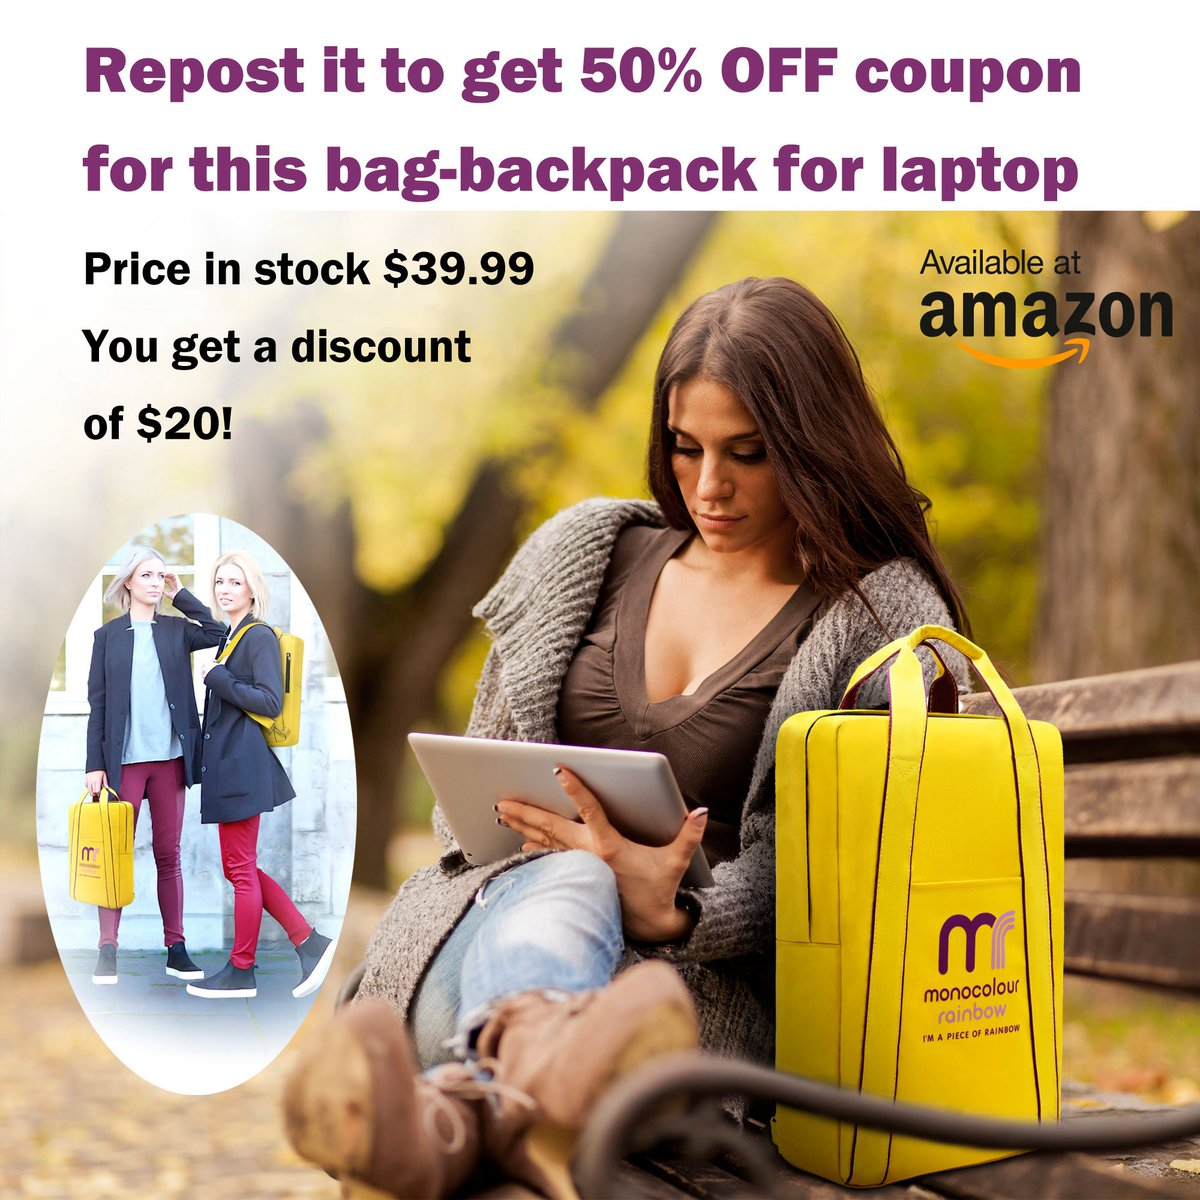 Get your $20 now! Make the repost of this offer now to get your coupon for 50% discount on a stylish bag-backpack for a laptop in fashion trend 2018.  #coupon #discount #style #bag #backpack #laptop #fashion #trend <br>http://pic.twitter.com/Opi9tTVIUa